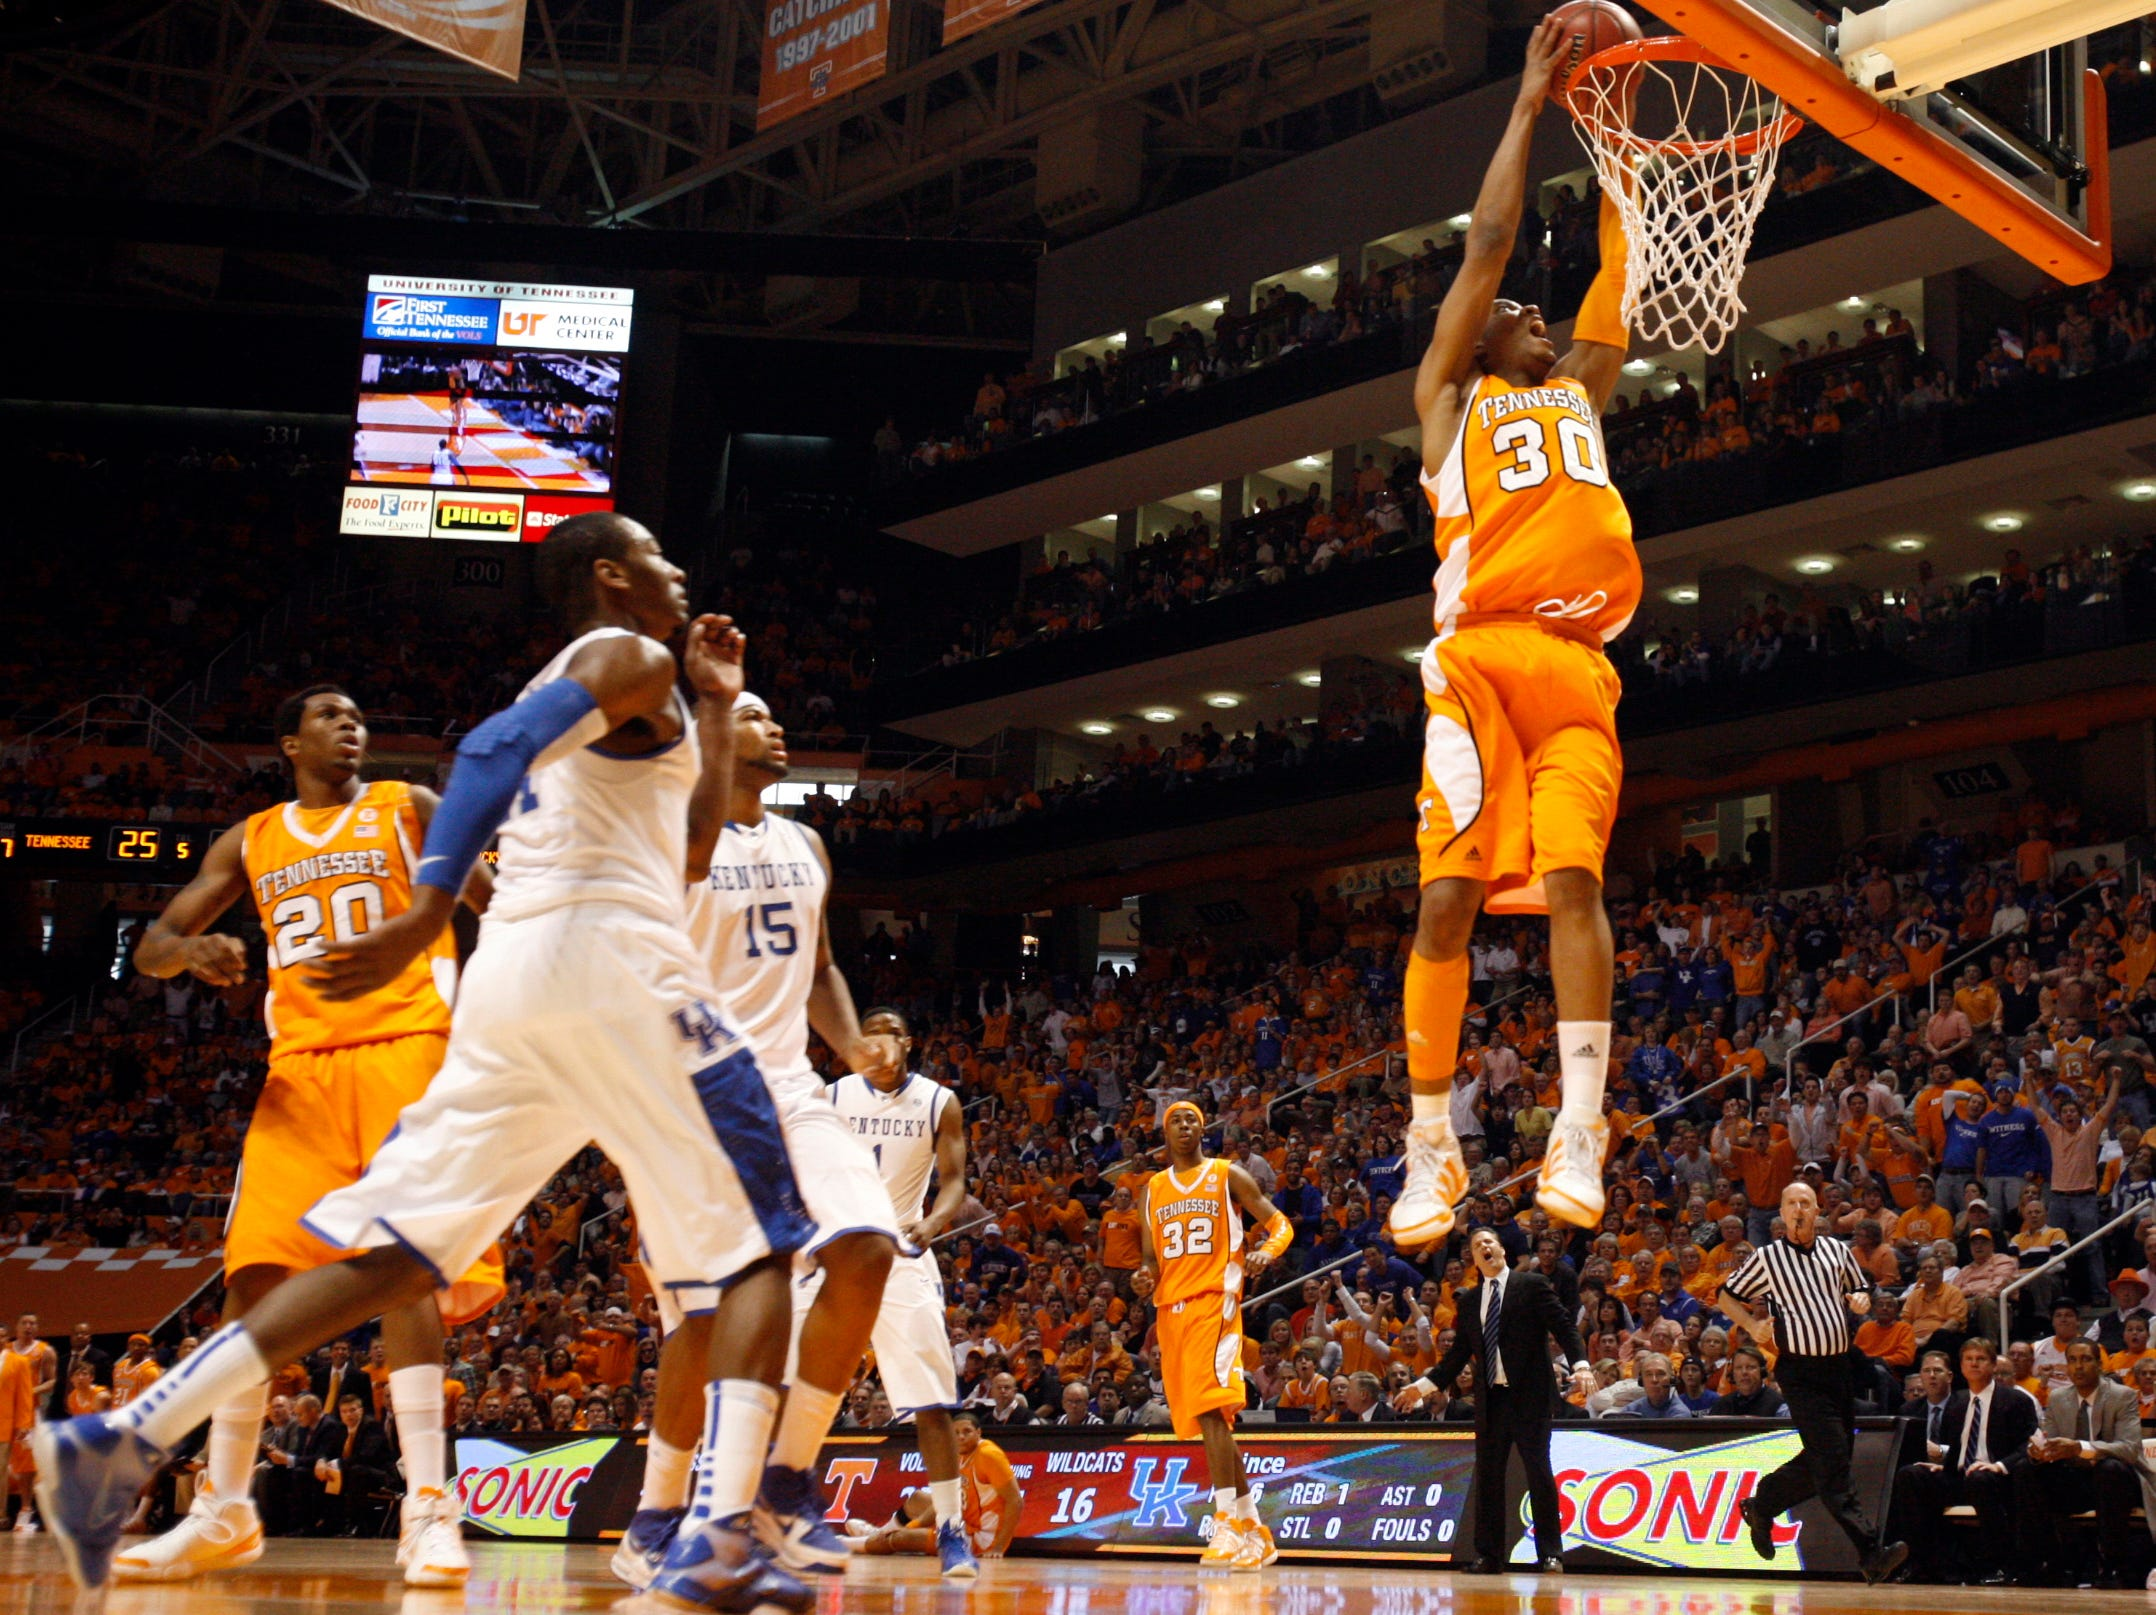 Tennessee guard J.P. Prince goes in for a dunk during the game against Kentucky at Thompson-Boling Arena Saturday, Feb. 27, 2010.  Prince led the Vols with 20 points to defeat the Wildcats 74-65.